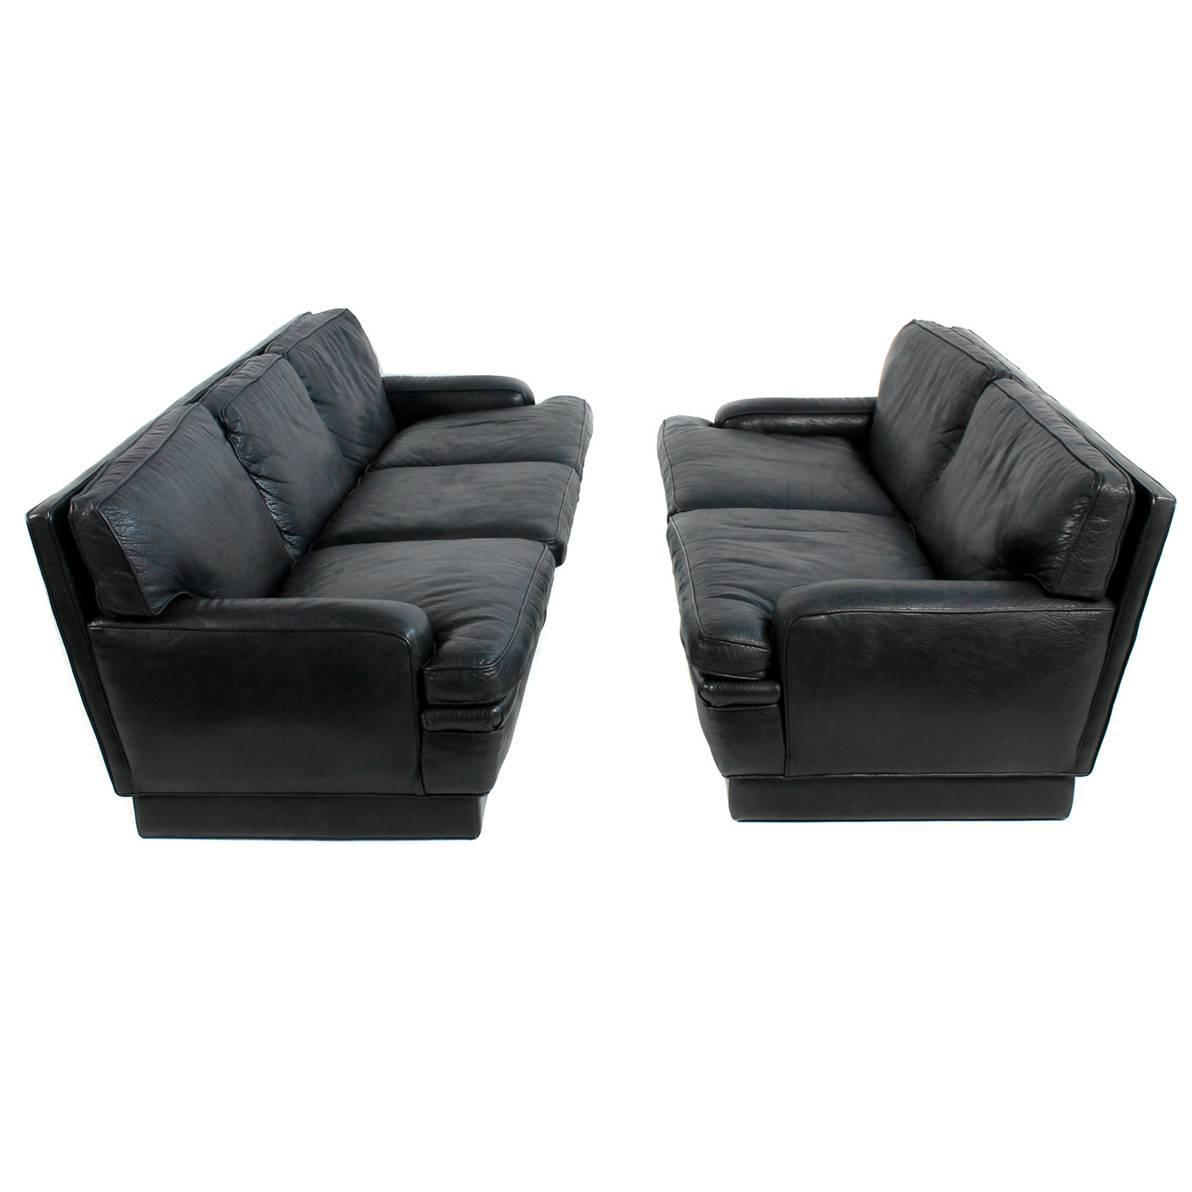 Swedish MidCentury Modern Black Leather Sofa by Arne Norell at